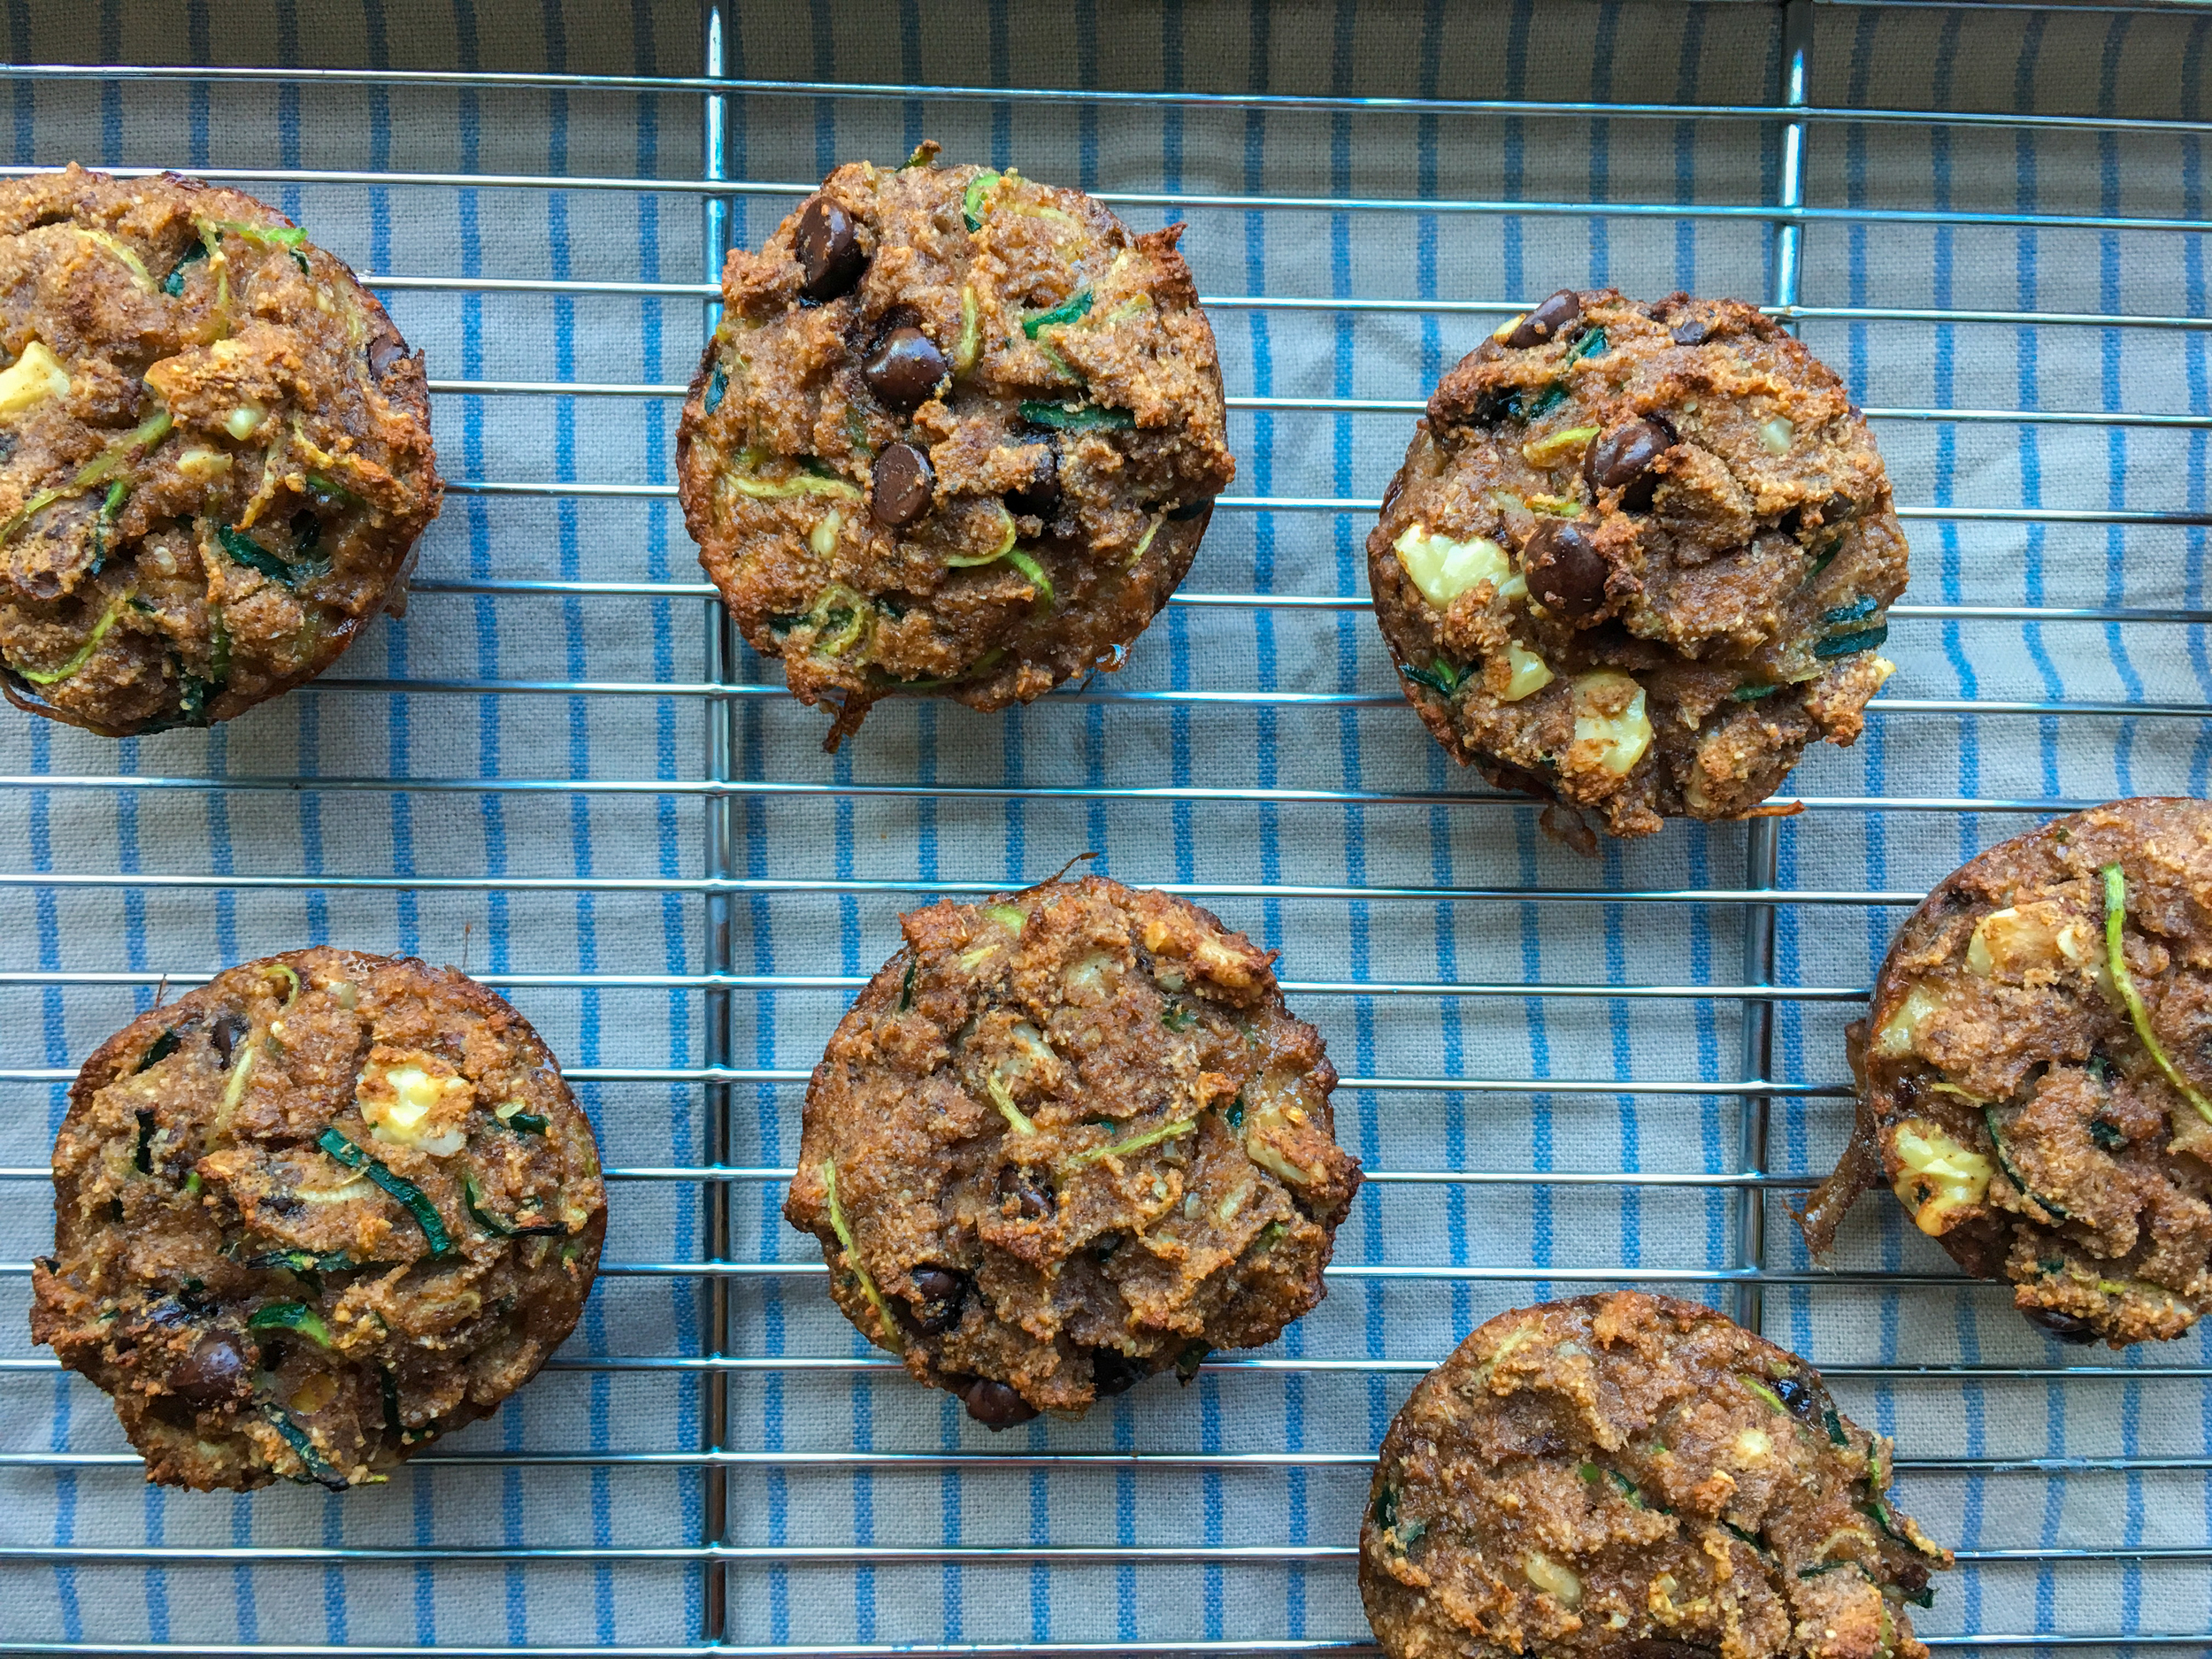 Zucchini muffins with chocolate chips and walnuts